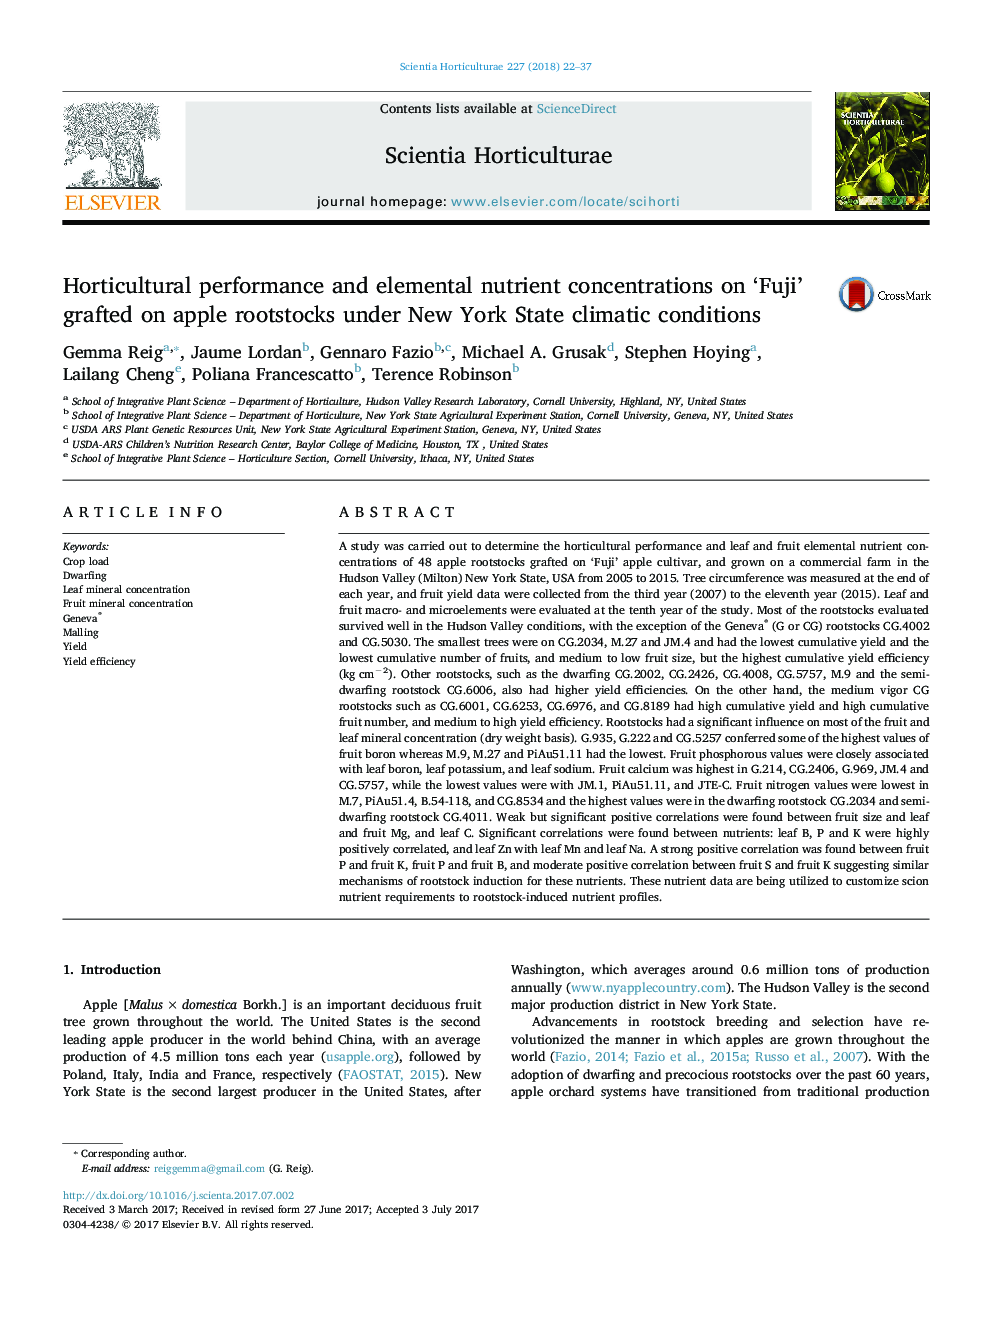 Horticultural performance and elemental nutrient concentrations on 'Fuji' grafted on apple rootstocks under New York State climatic conditions